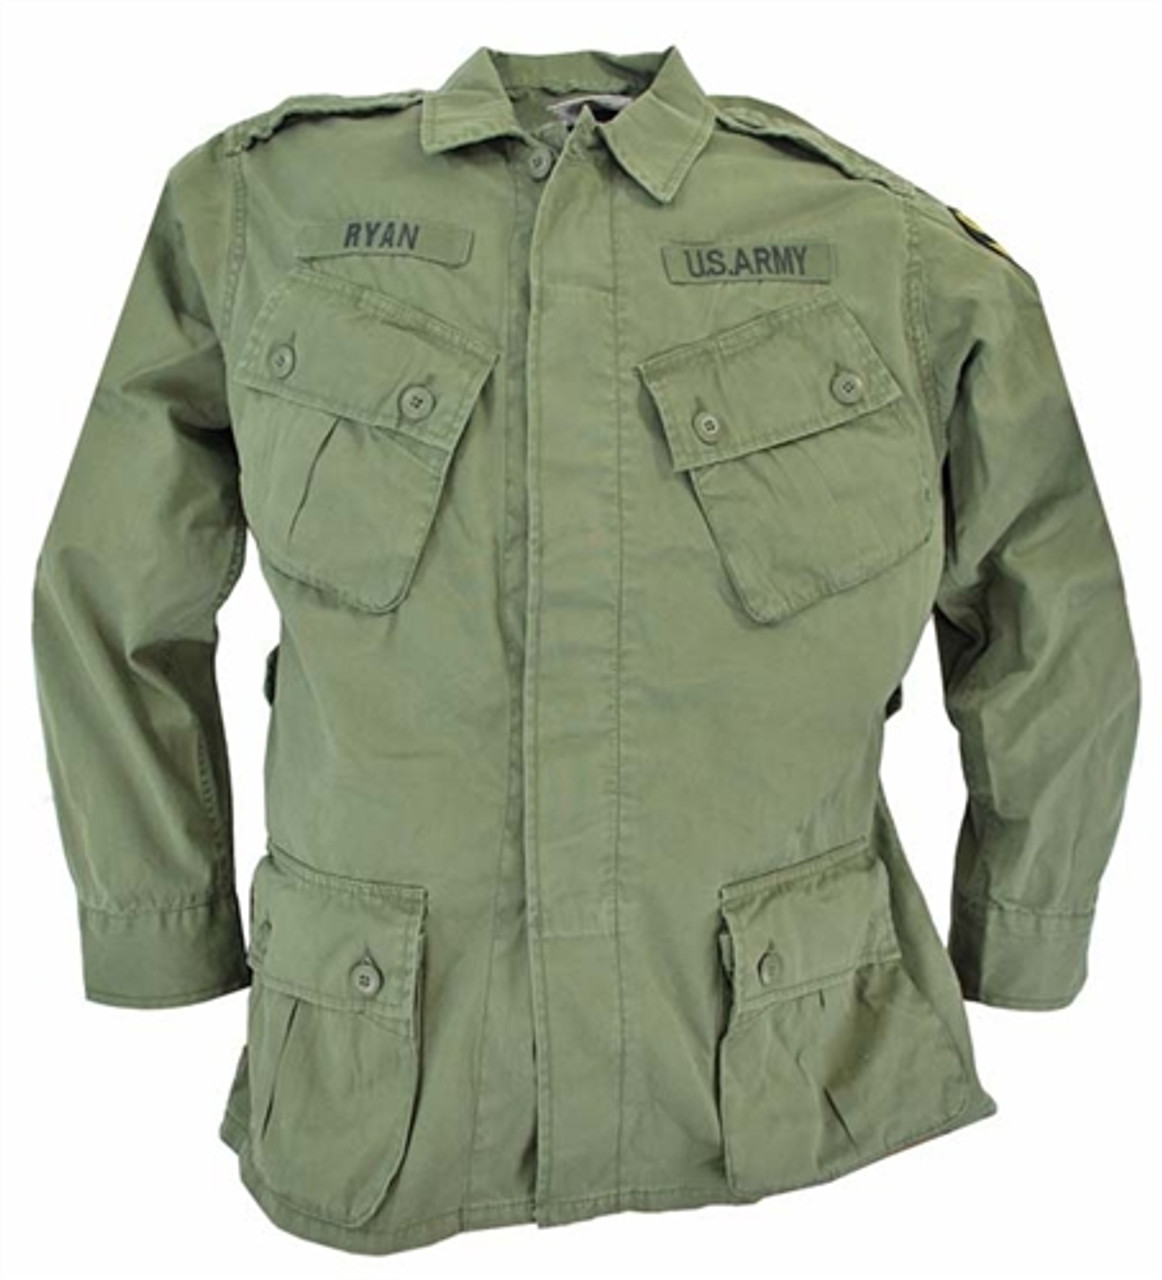 1st Pattern Vietnam Era Jungle Fatigue Shirt from Hessen Tactical